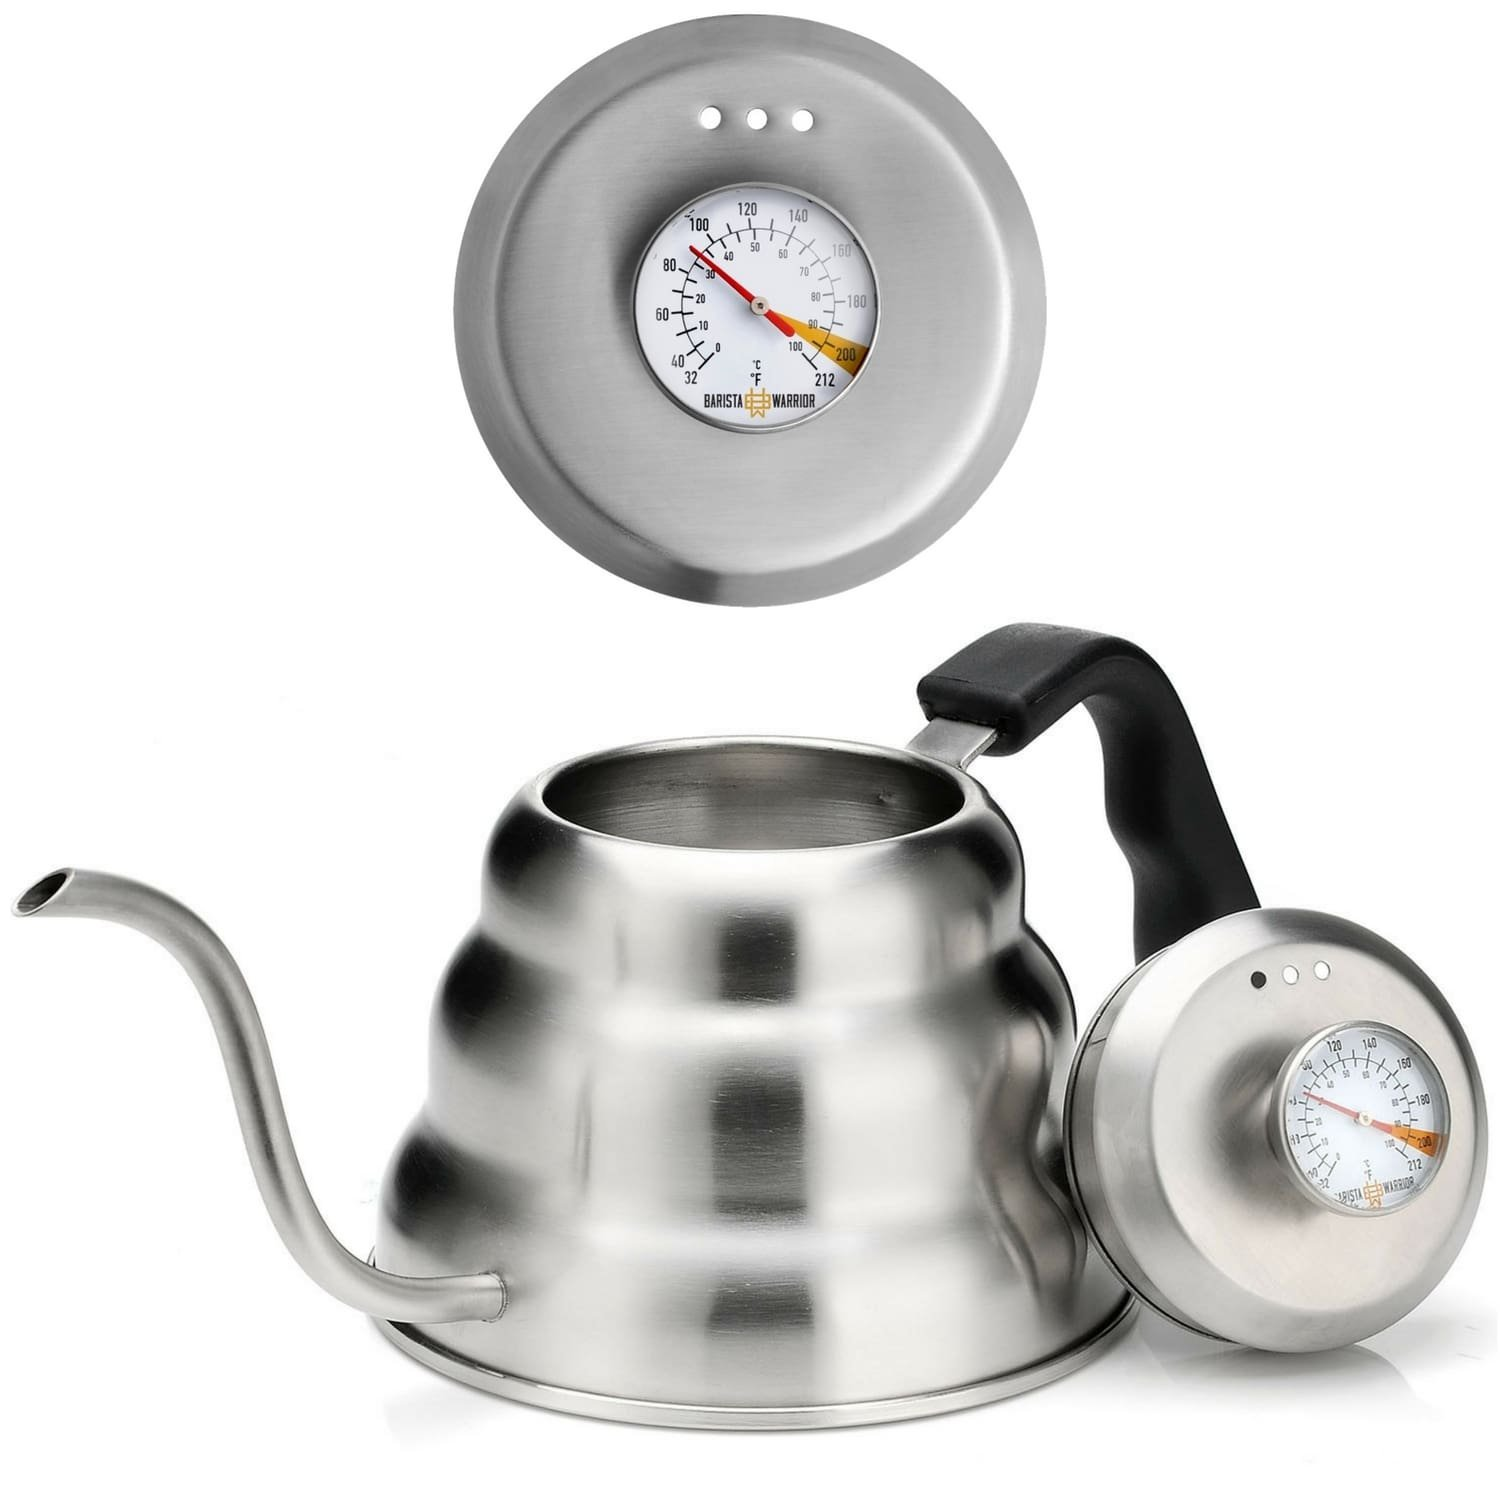 Pour Over Coffee Kettle with Thermometer for Exact Temperature - Gooseneck Pour Over Kettle for Drip Coffee and Tea (1.0 Liter | 34 fl oz) Barista Warrior